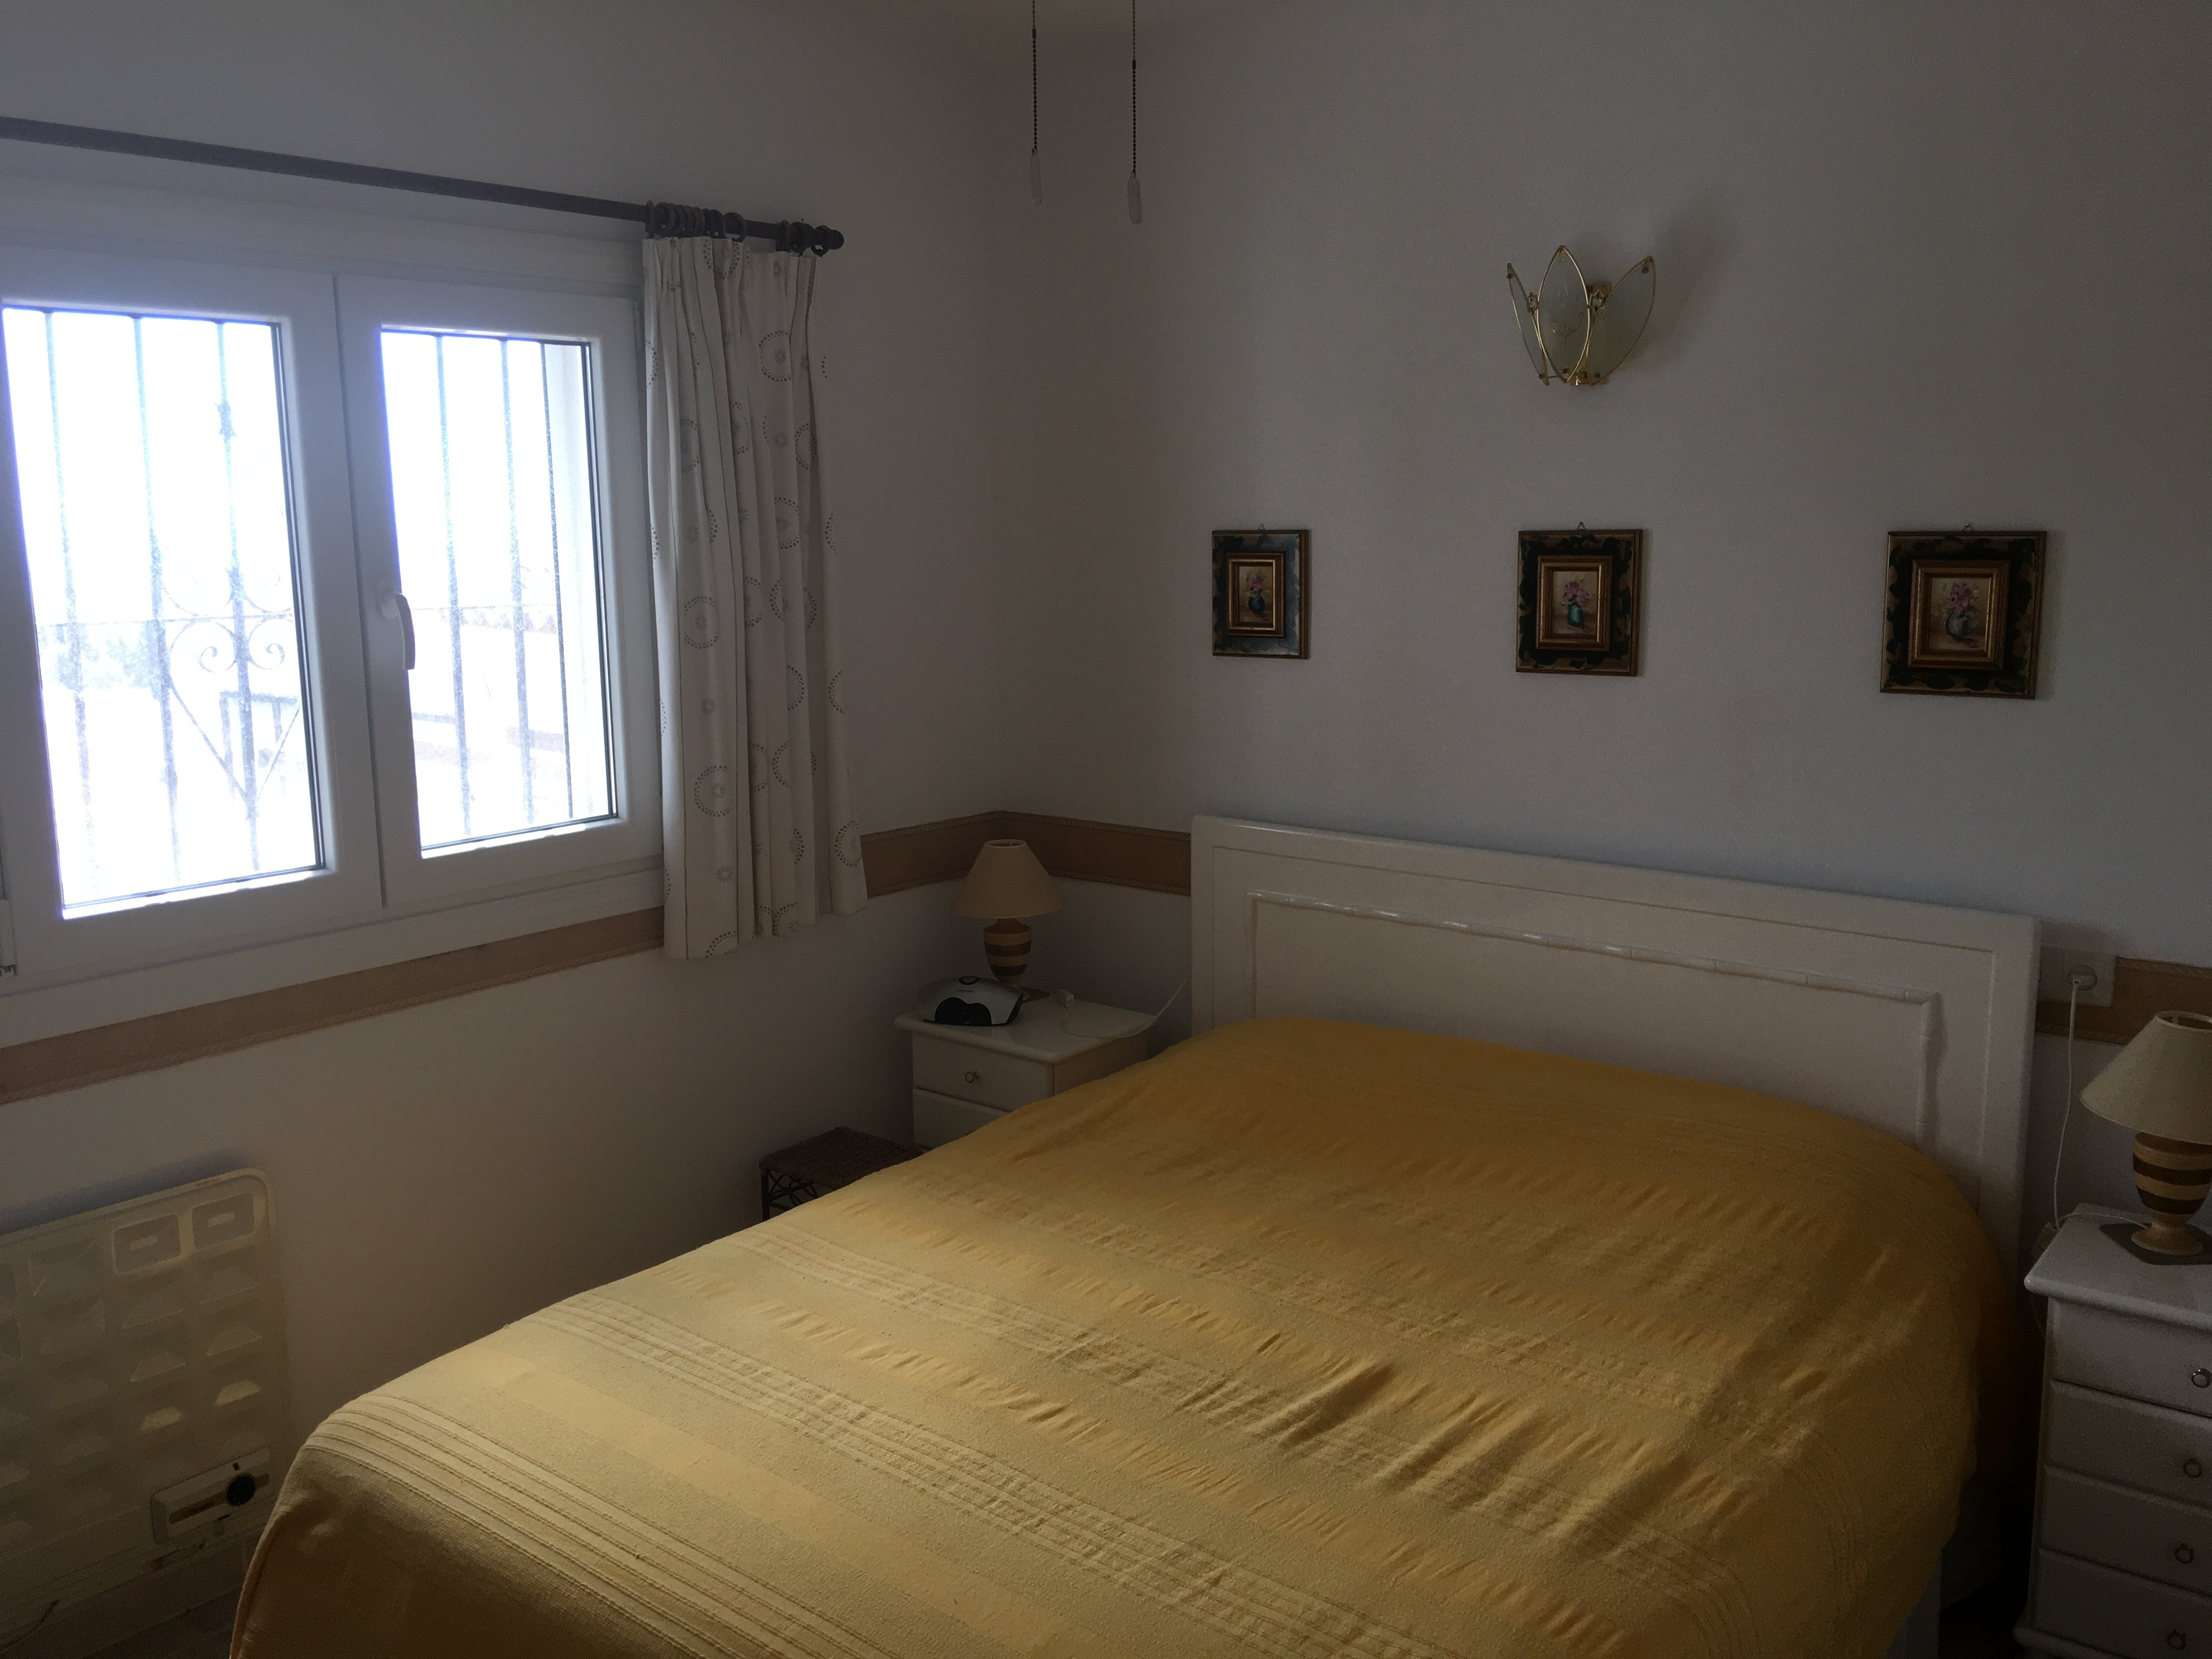 Cheap 2 Bedroom Apartments Co Cheap 2 Bedroom Calis Apartment For Sale Modern 2 Bedroom